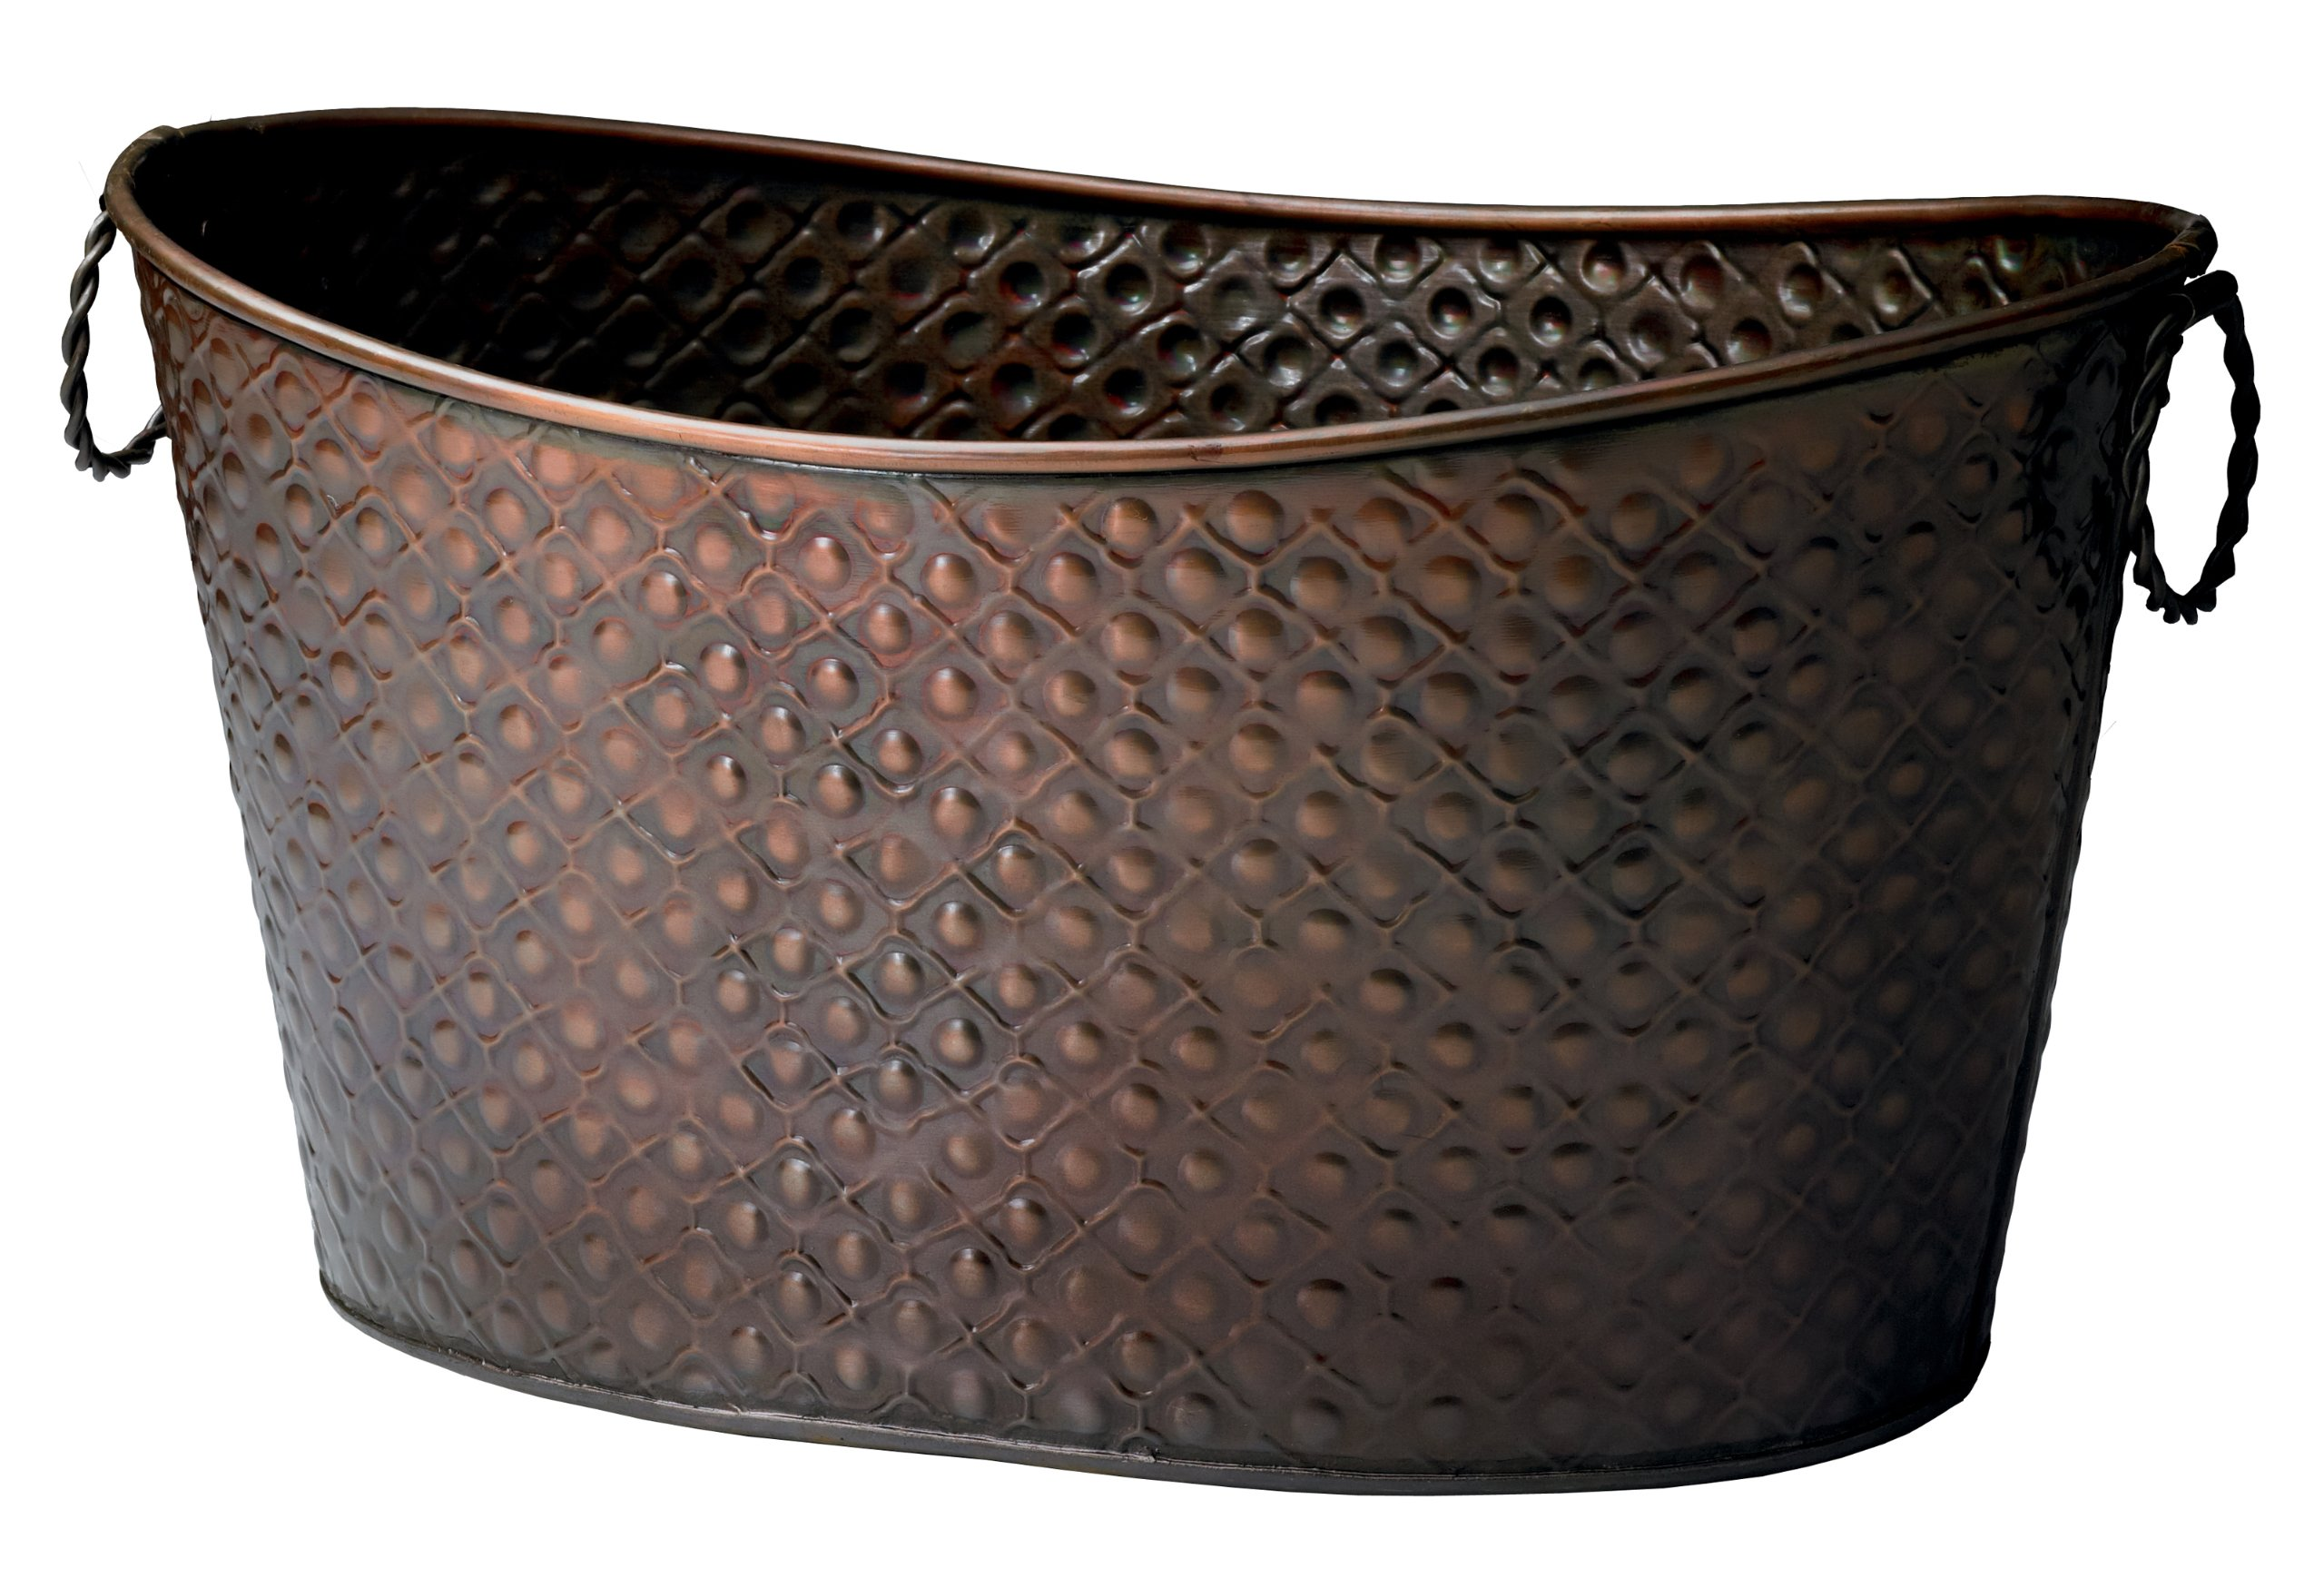 KINDWER Copper Relief Oval Beverage Tub/Planter